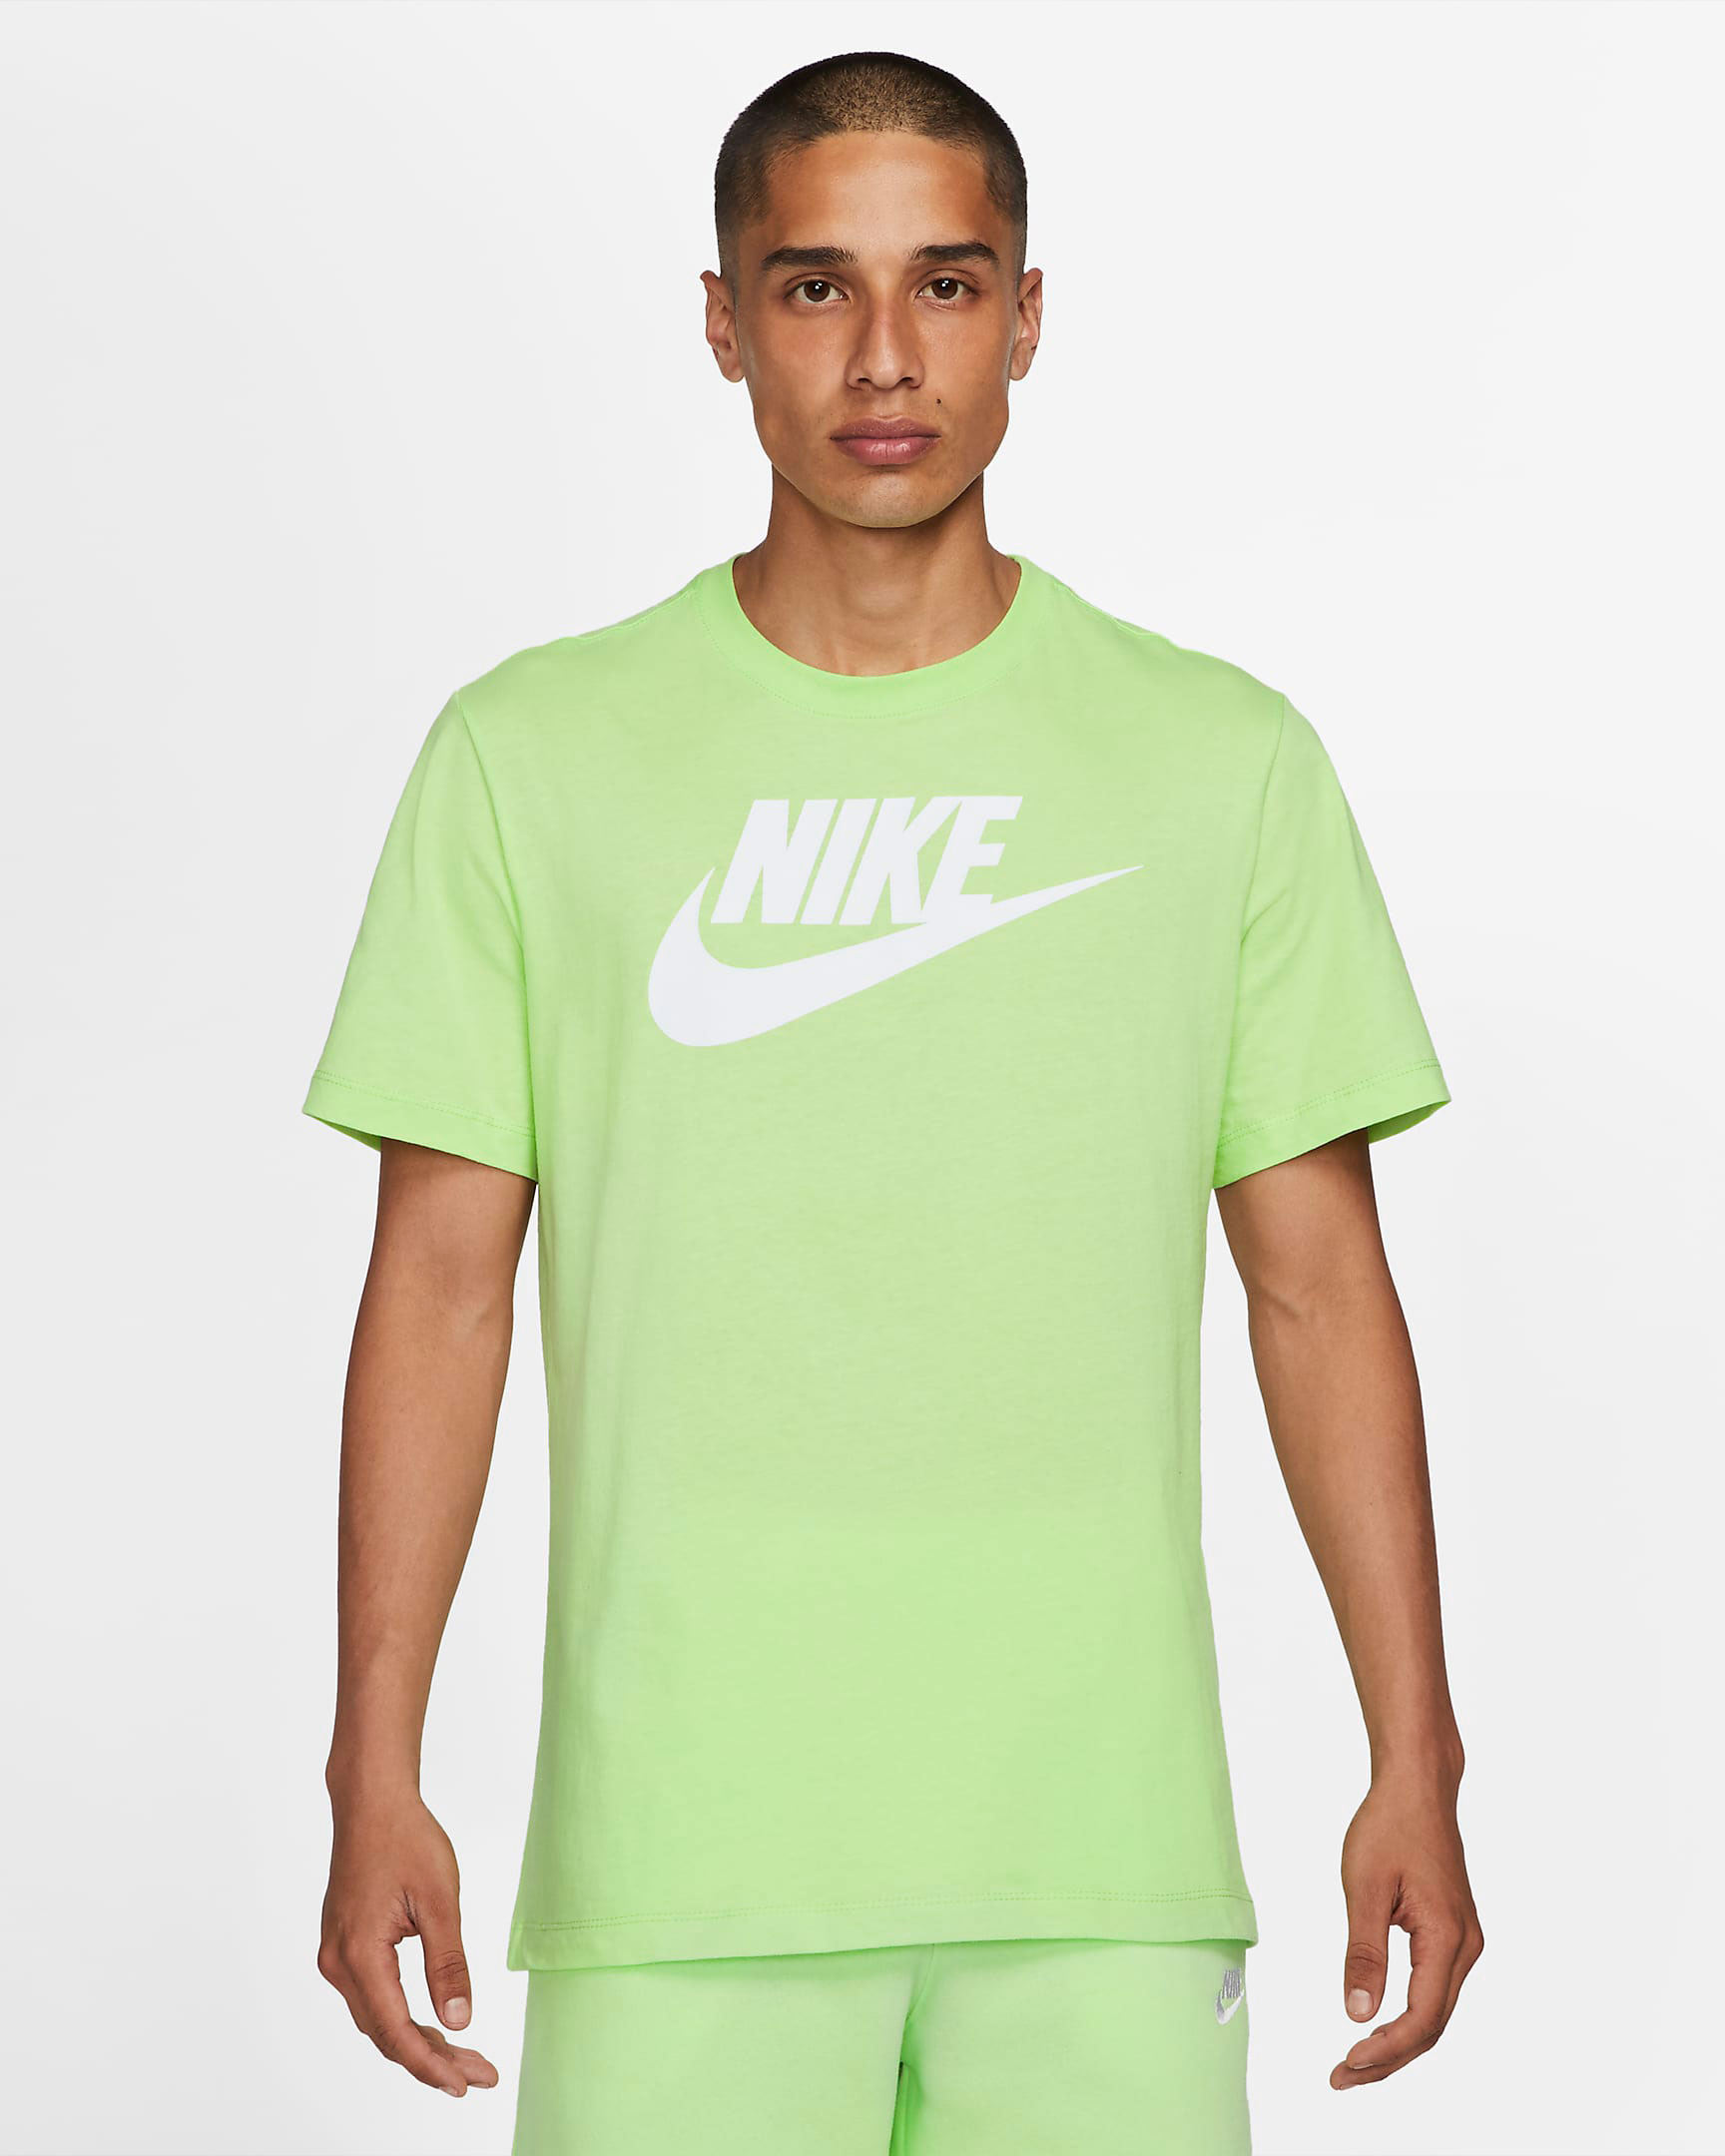 nike-sportswear-light-liquid-lime-shirt